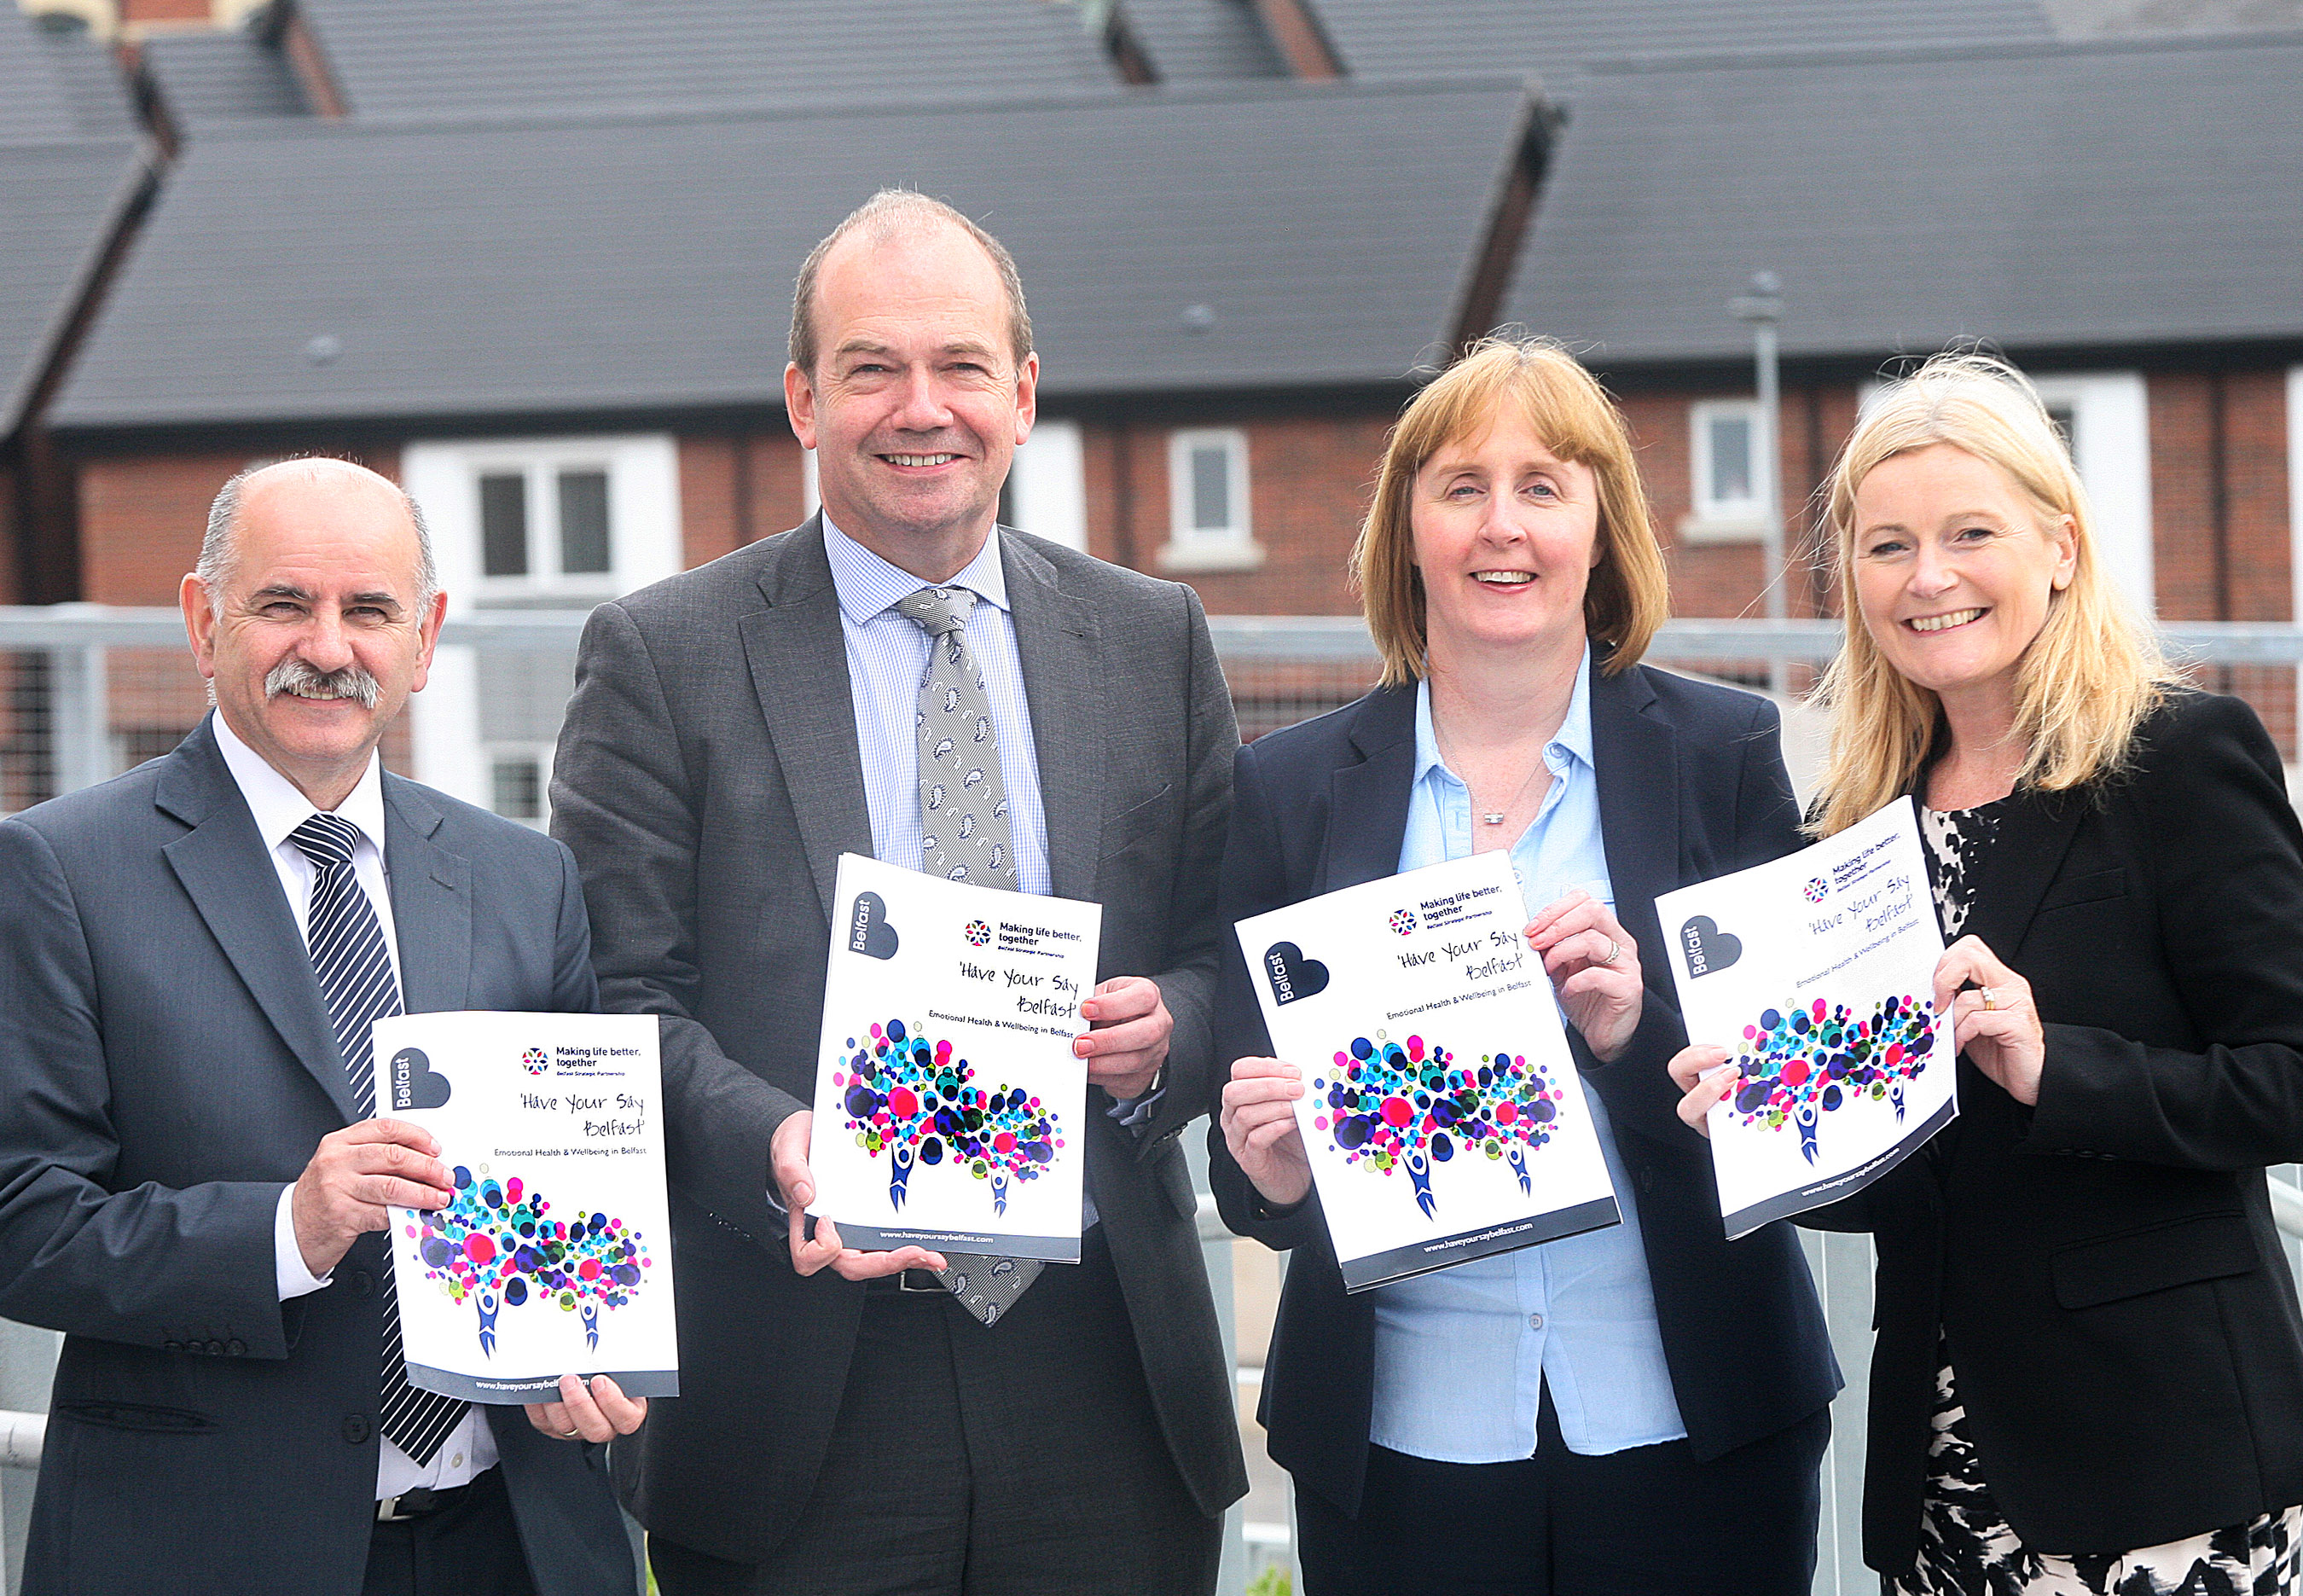 Launching the Have Your Say Belfast Survey are (L-R): Dr Eddie Rooney and Dr Michael McBride, Co-Chairs of the Belfast Strategic Partnership (BSP); Irene Sherry, Chair of BSP Mental Health & Emotional Wellbeing Thematic Group and Siobhan Toland, Head of Environment Health & Lead Operations Officer of City and Neighbourhoods Services, BCC.